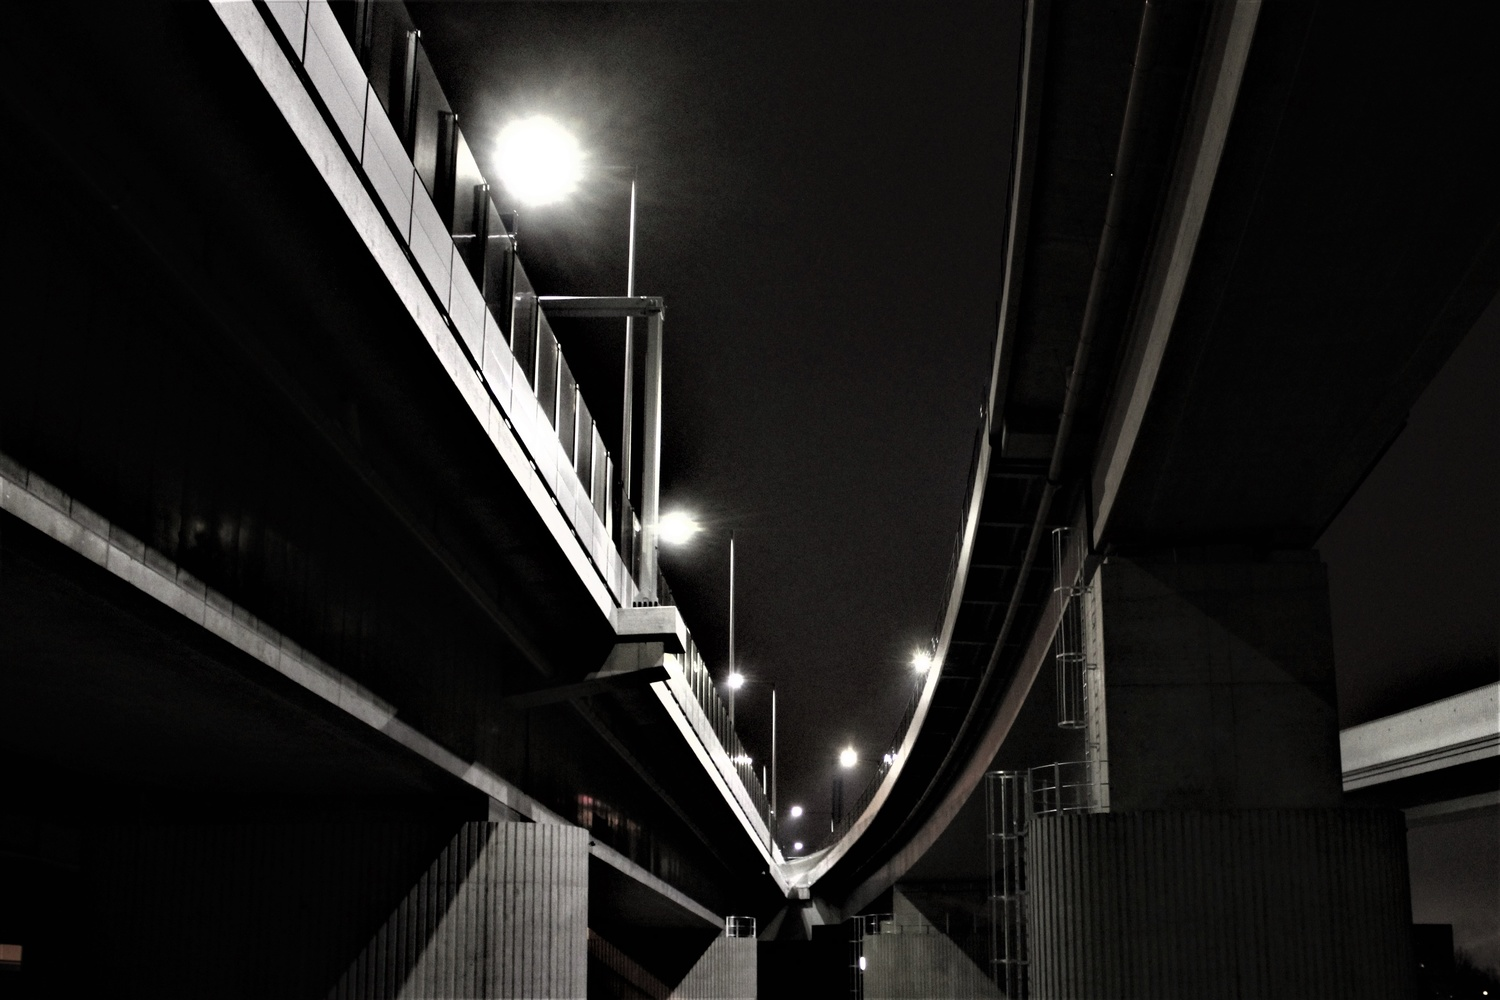 The bridge over troubled water by Shhh Linz